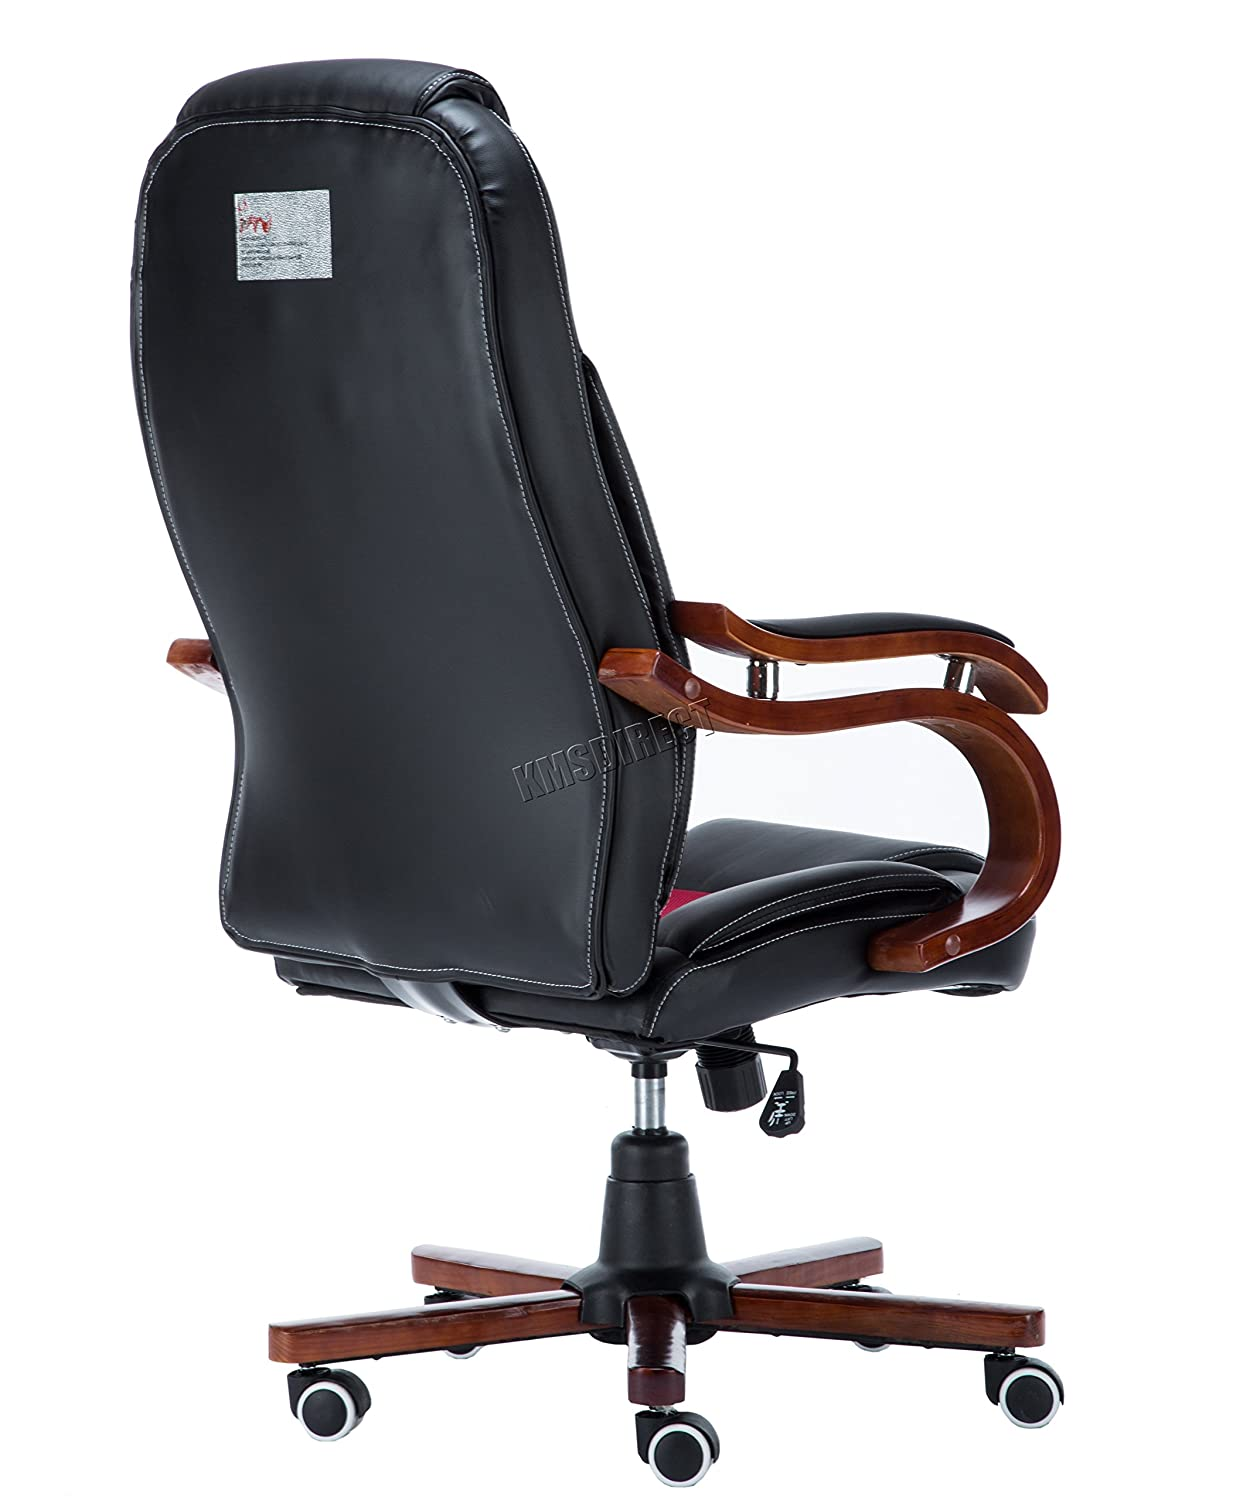 Office chair for sale jhb - Foxhunter Computer Executive Office Desk Chair Faux Leather Swivel Furniture High Back Wood Armrest Adjustable Oc02 Black Amazon Co Uk Kitchen Home